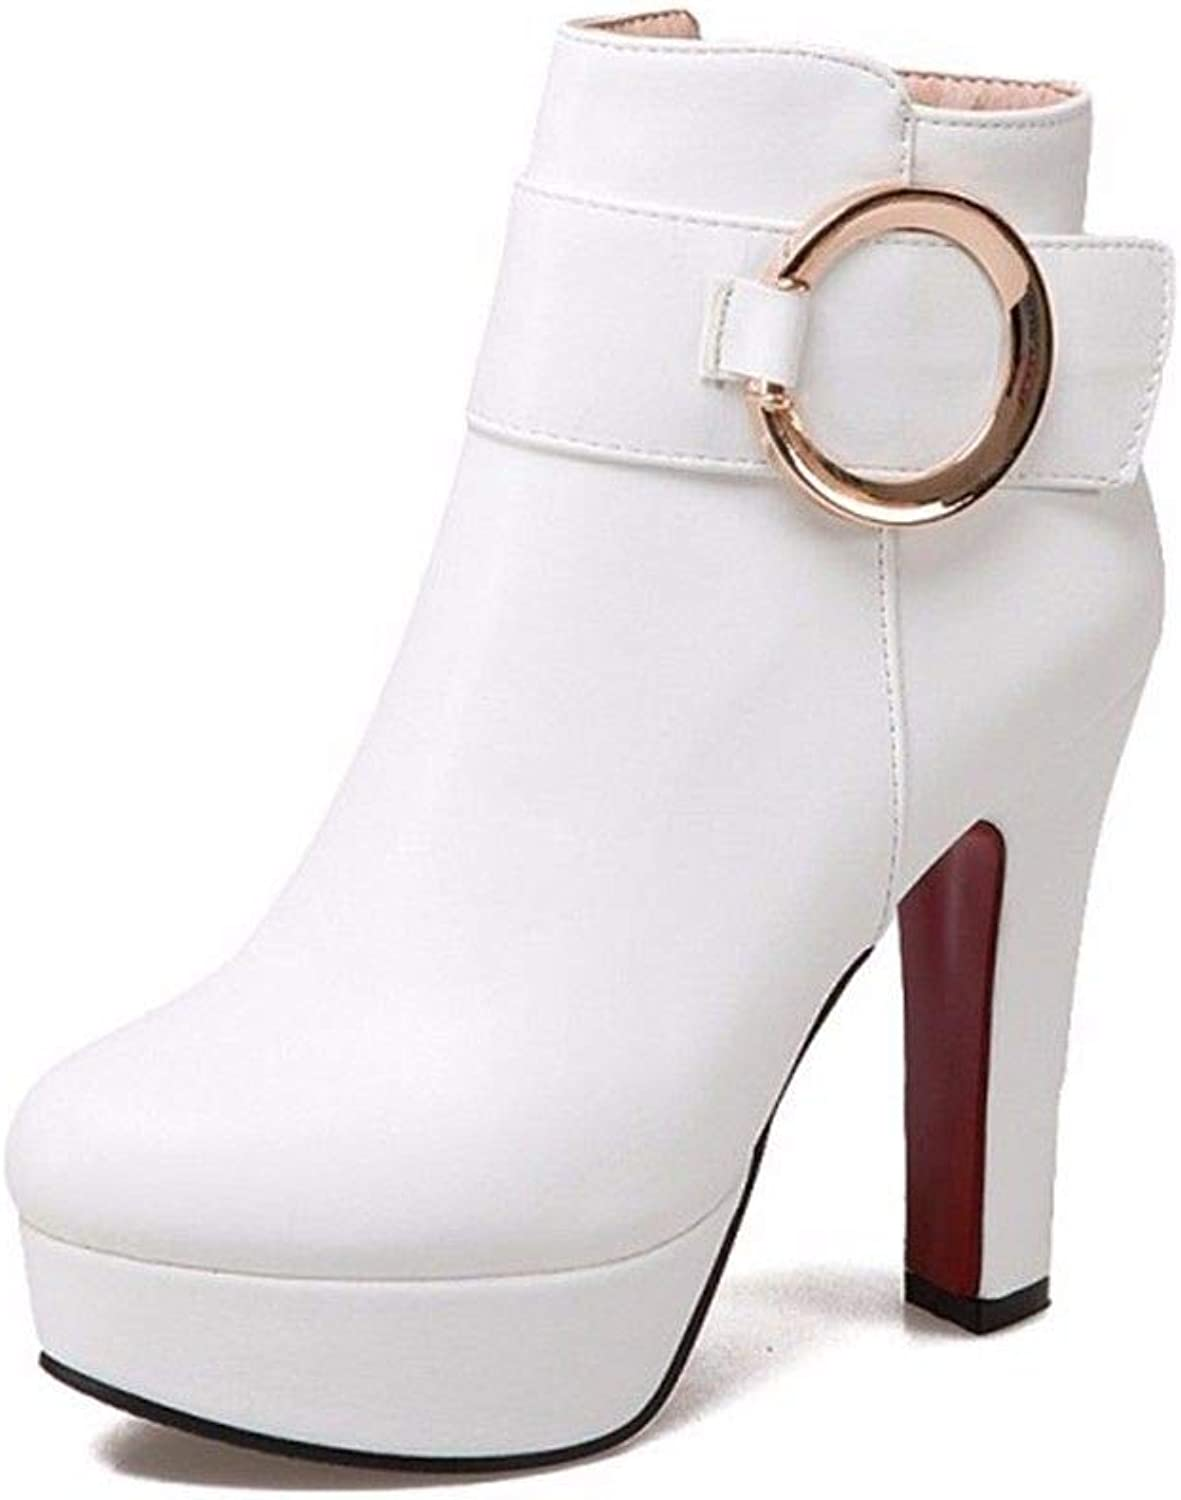 Autumn and Winter Female high-Heeled shoes Waterproof Boots shoes Size